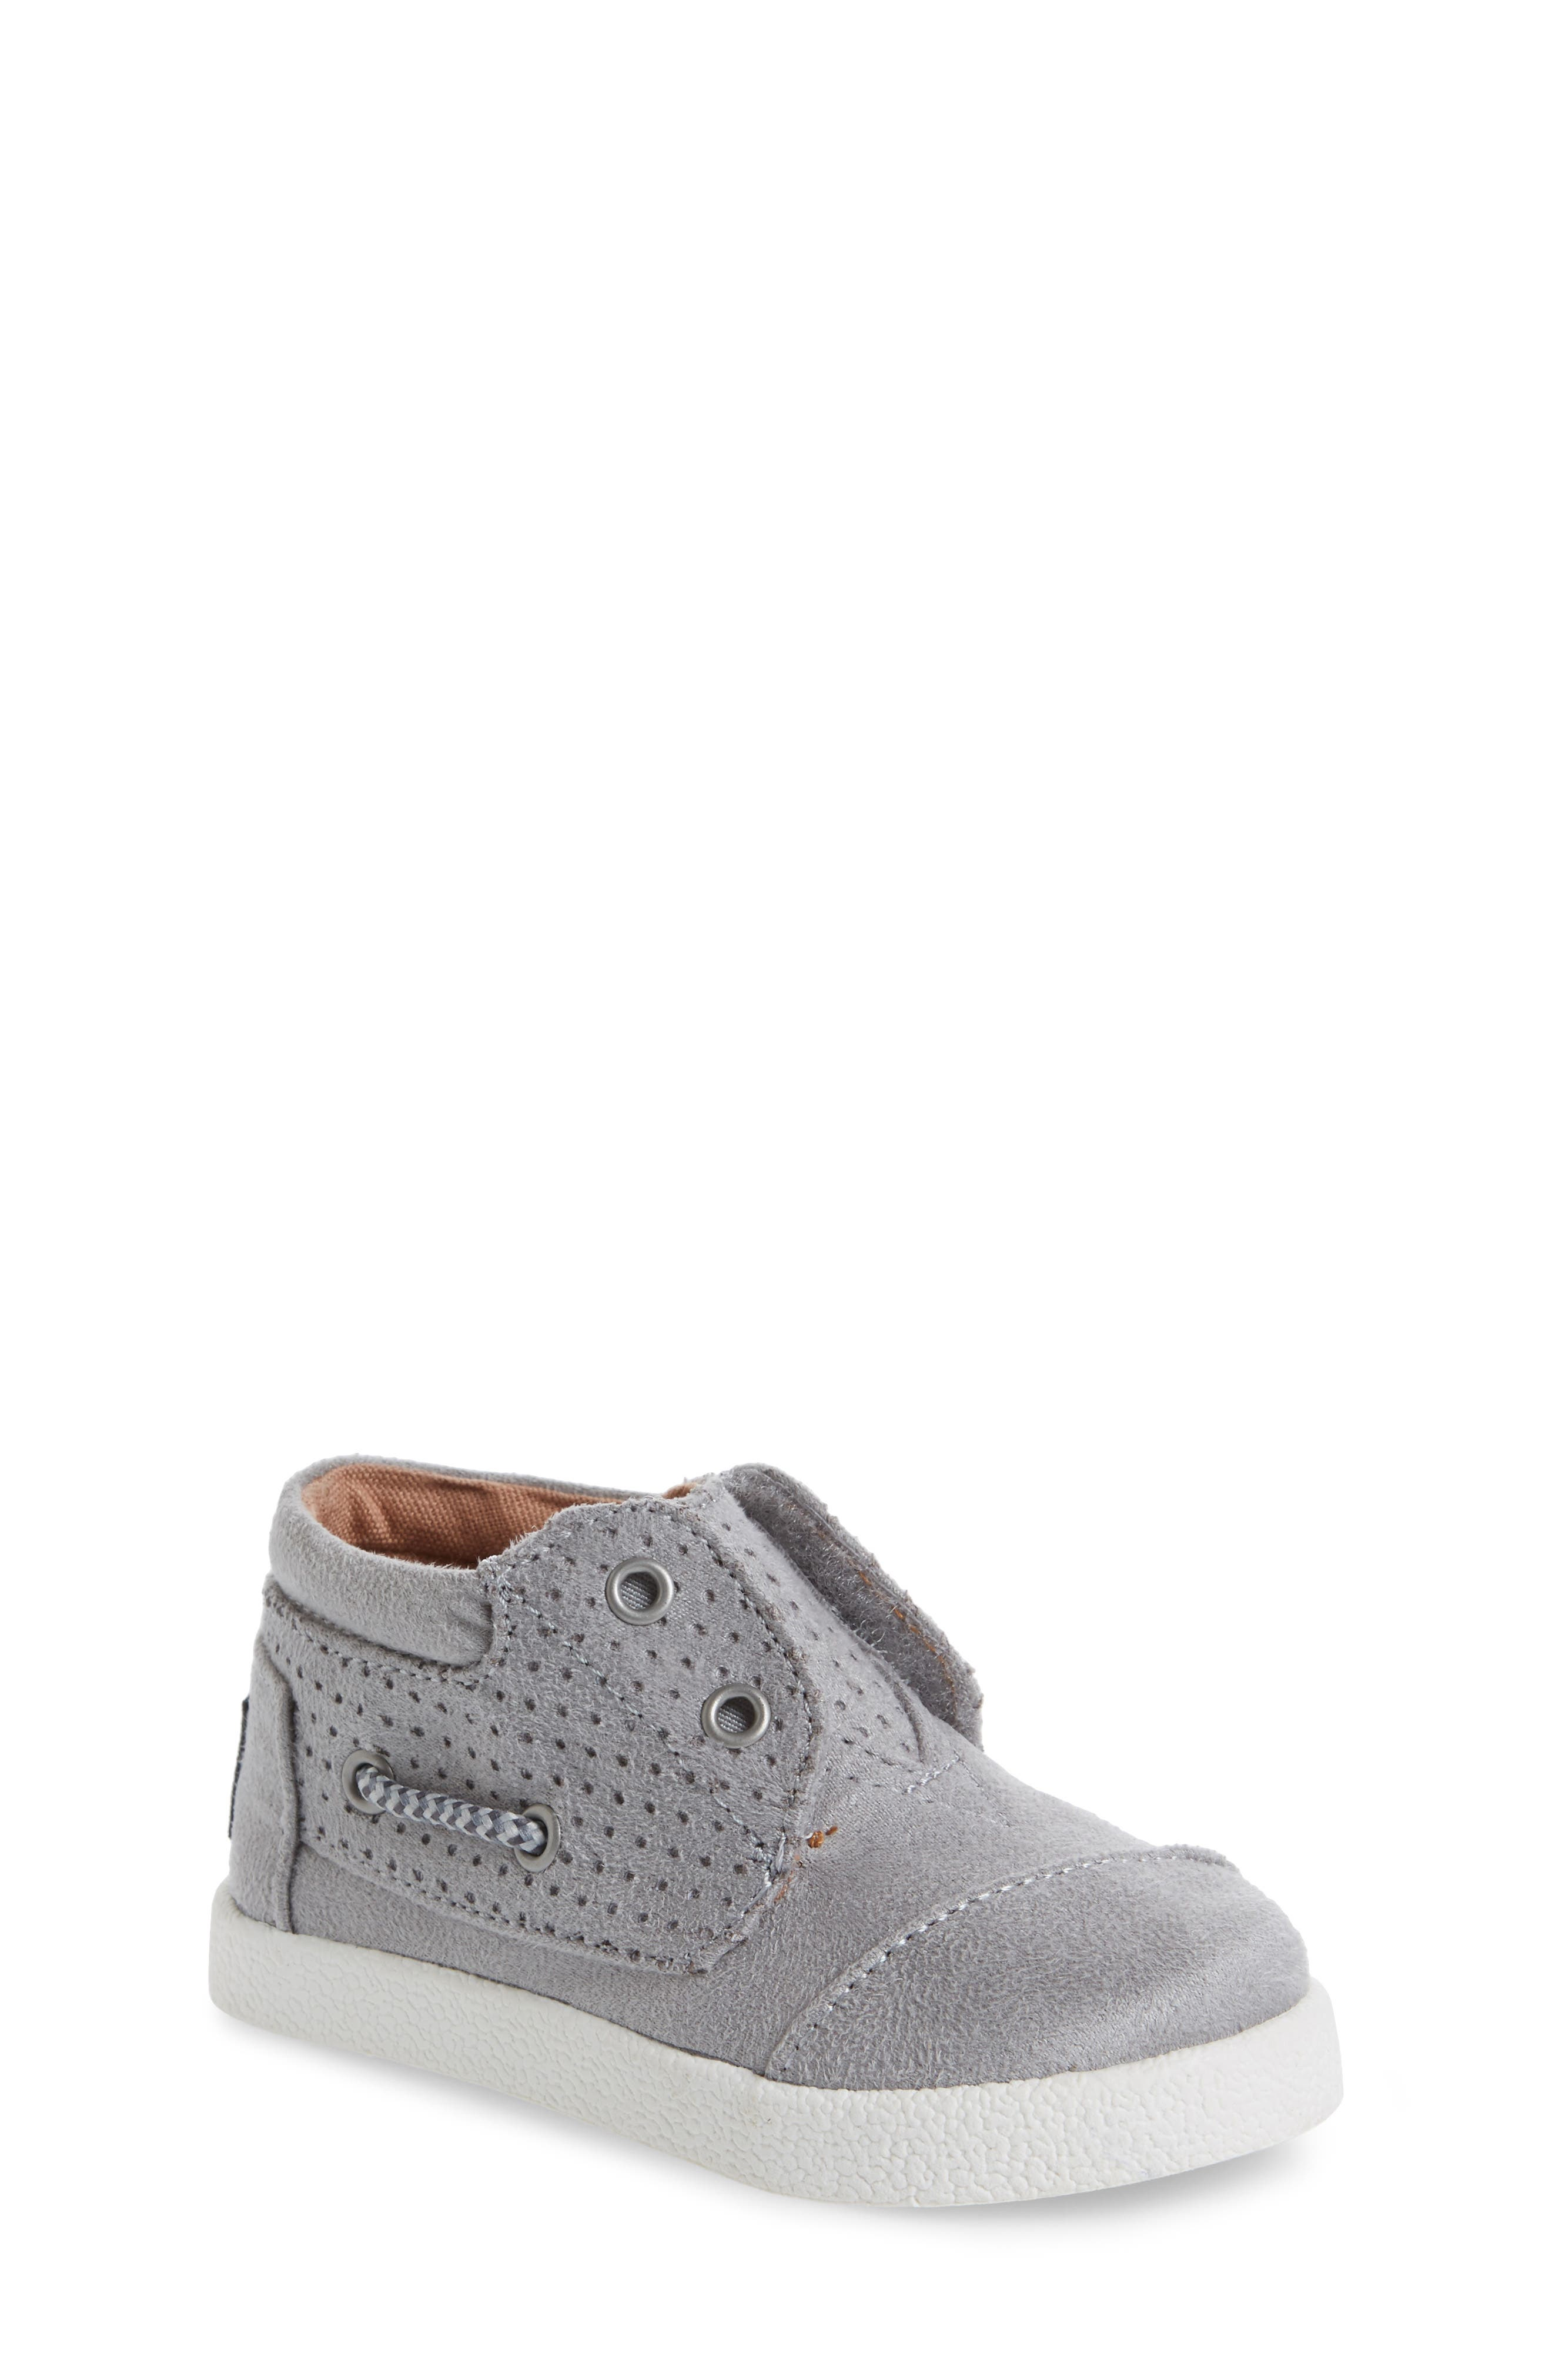 'Bimini' High Top,                         Main,                         color, 020